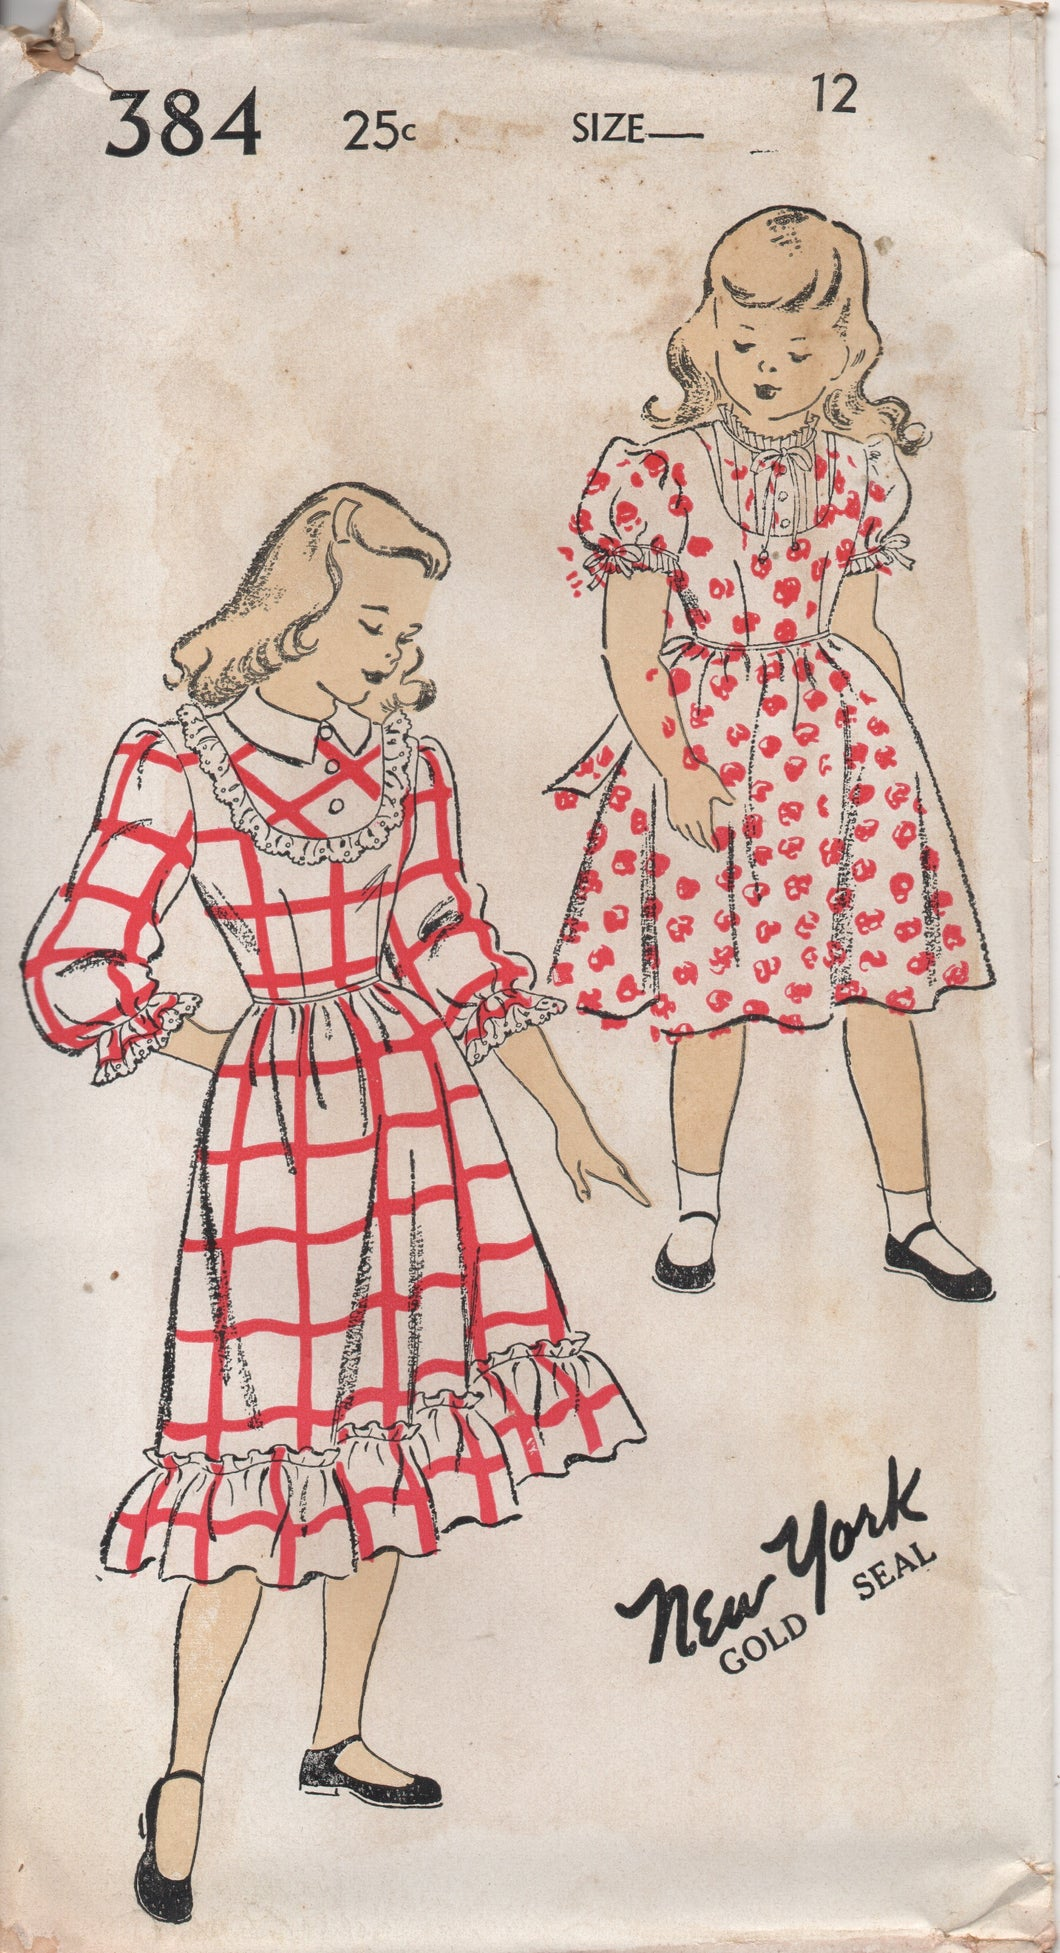 1940's New York Girl's One Piece Dress with Short or 3/4 Sleeves and High Neckline - Bust 30